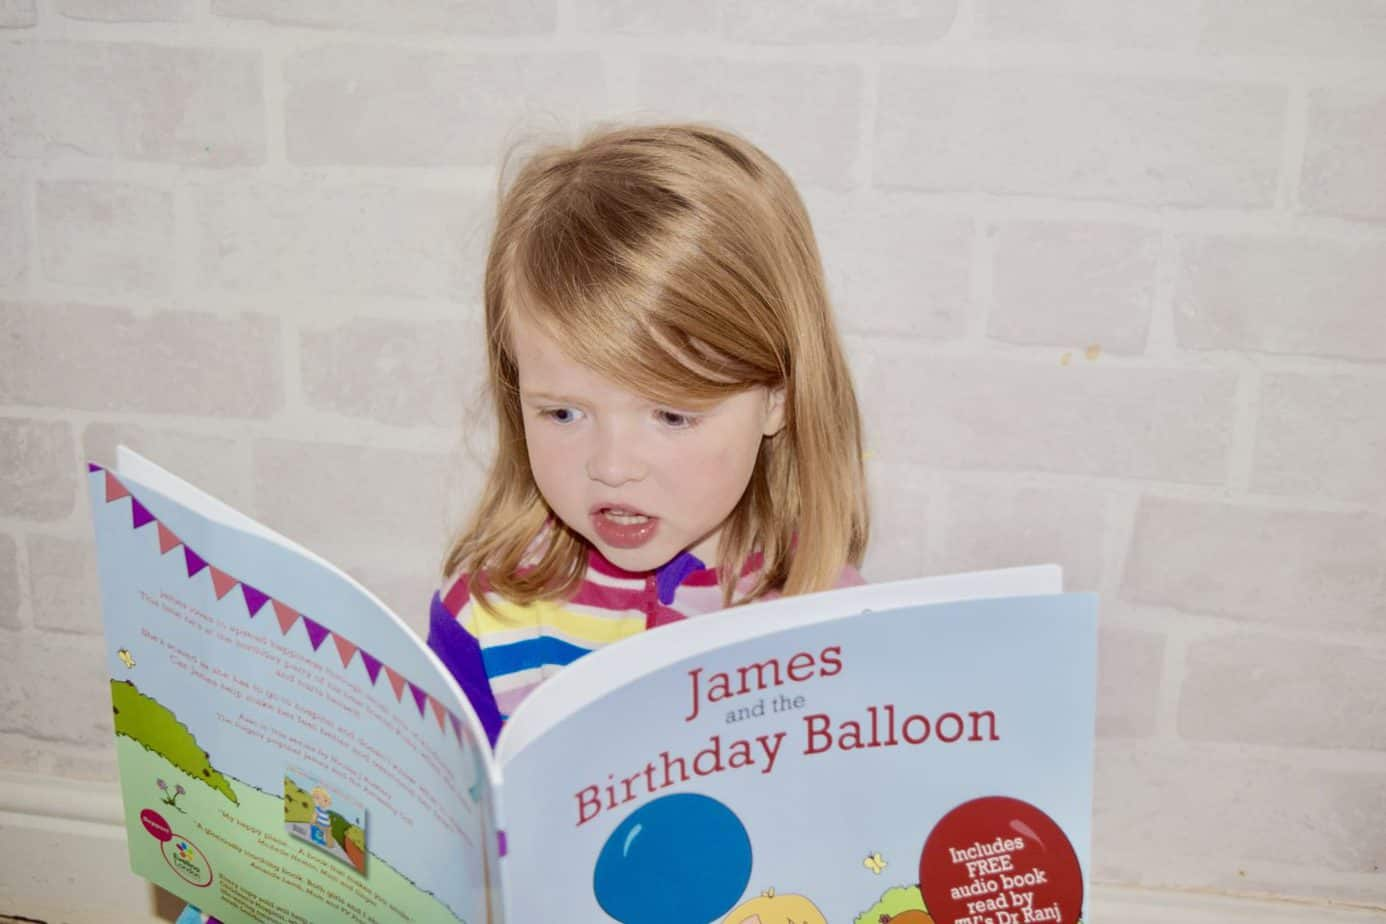 W reading the book James and the Birthday Balloon